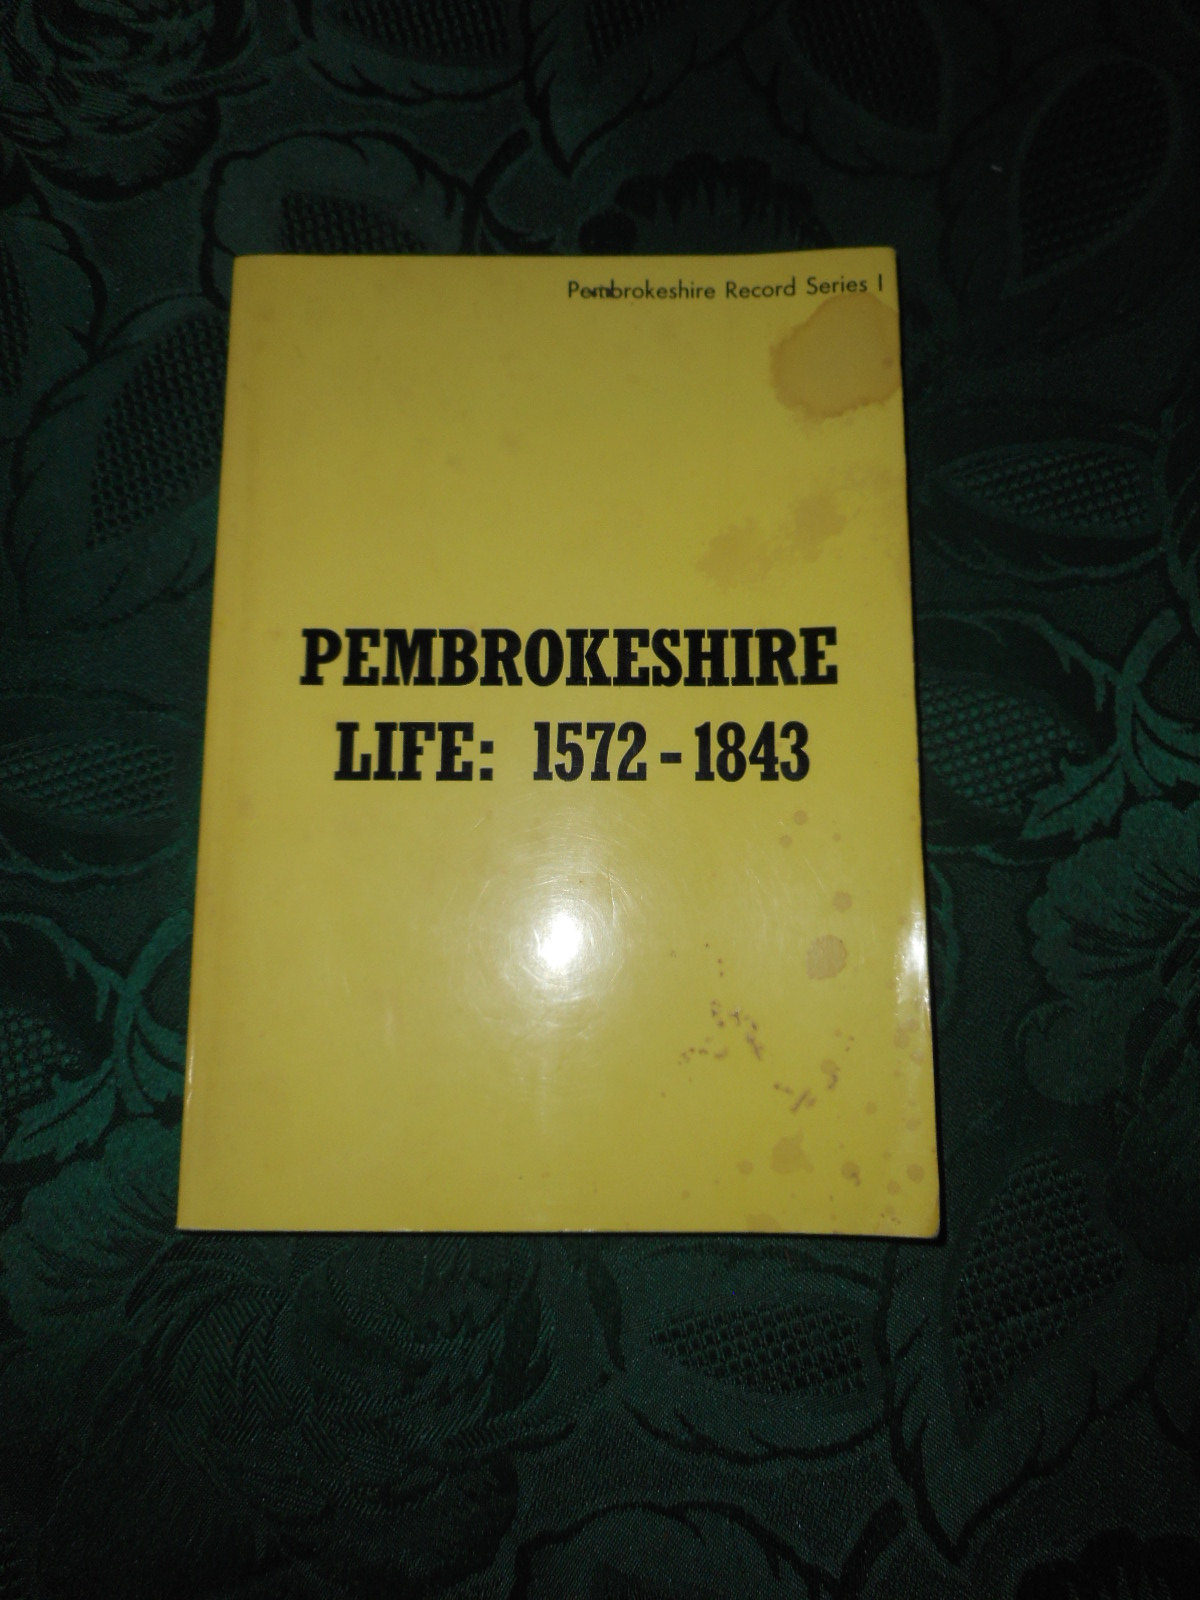 Image for Pembrokeshire Life: 1572-1843, A Selection of Letters.  Pembroke Record Series 1